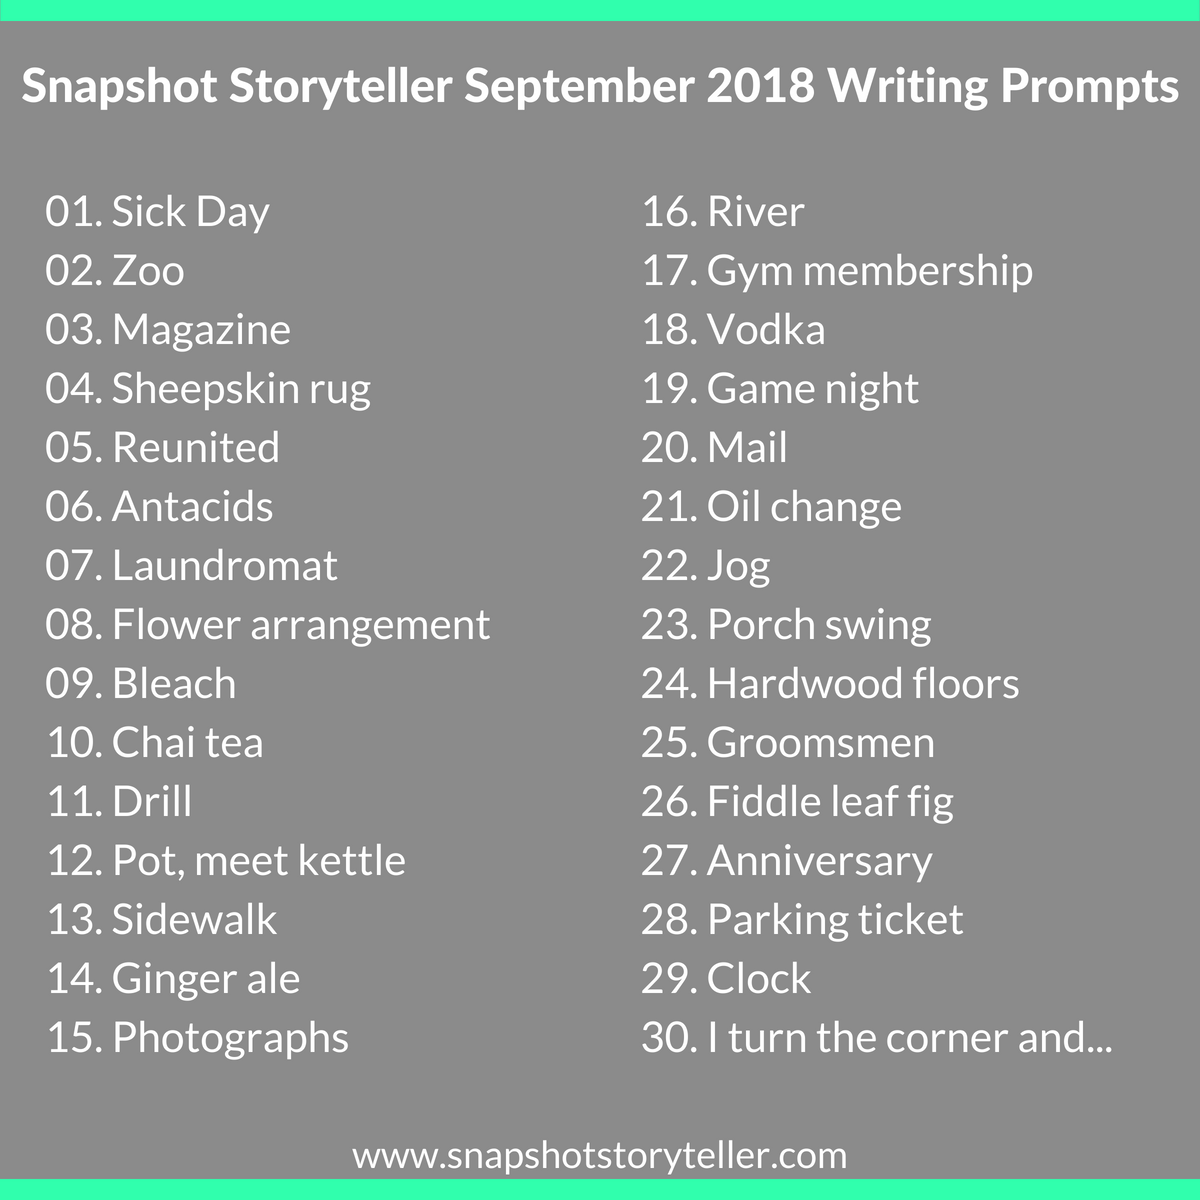 Snapshot Storyteller: September 2018 Writing Prompts -- It's a new month and you know what that means? That's right, new writing prompts. Enjoy! | www.snapshotstoryteller.com #amwriting #snapshotstoryteller #creativestoryteller #creative #storyteller #creativewriter #IWrite #WriteOn